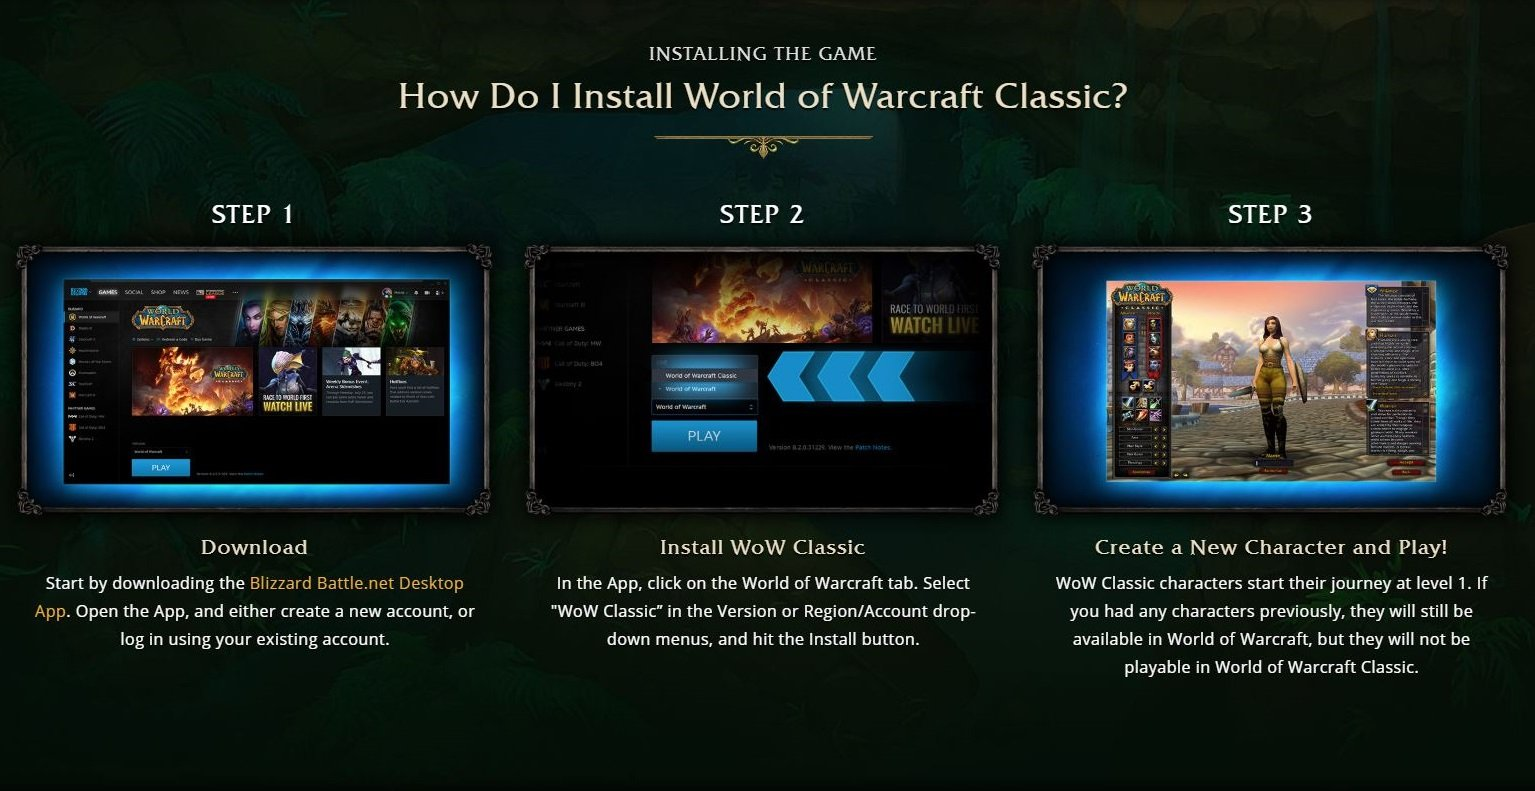 The install option for WoW Classic can be found in a drop-down menu in the Blizzard launcher on the World of Warcraft page. © Blizzard